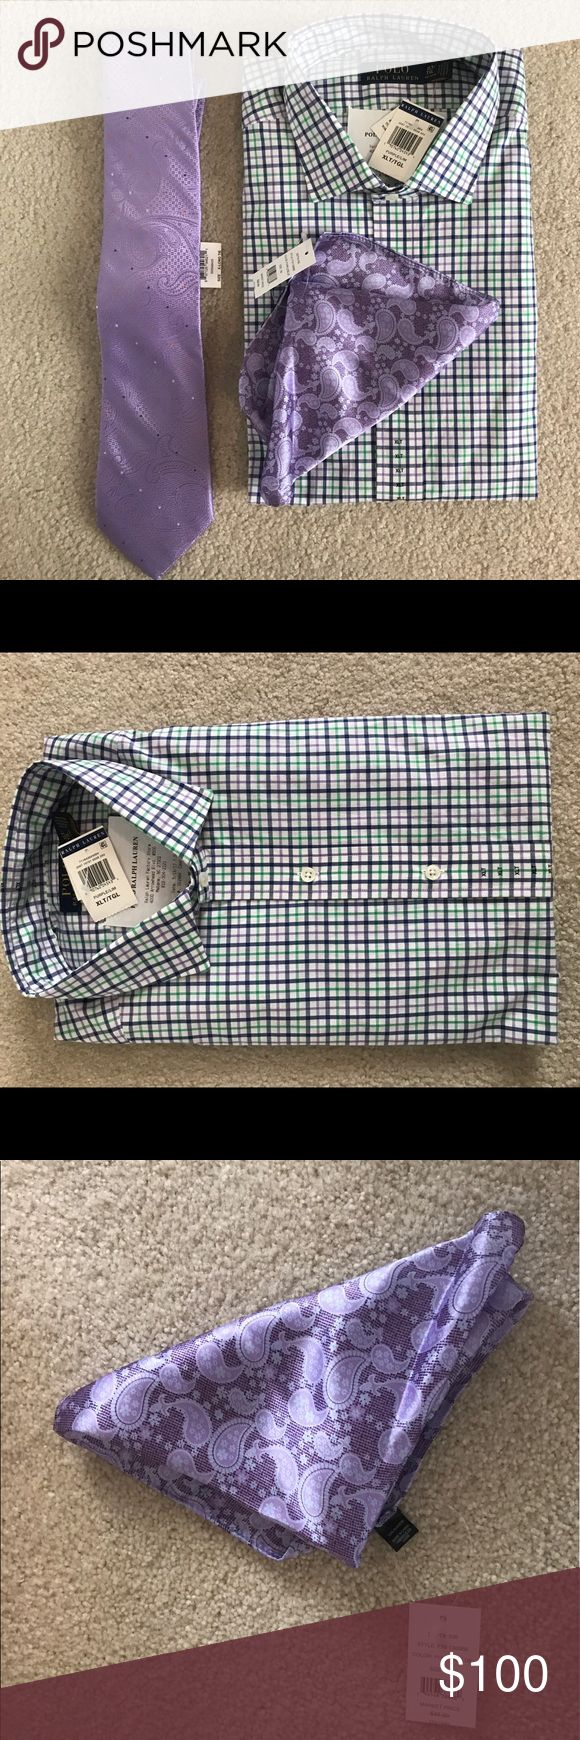 Men's Polo Dress shirt set XLT Brand new with tags and receipt! XLT polo dress shirt set with new tie and handkerchief. Message if you want to buy an item separately. Polo by Ralph Lauren Shirts Dress Shirts